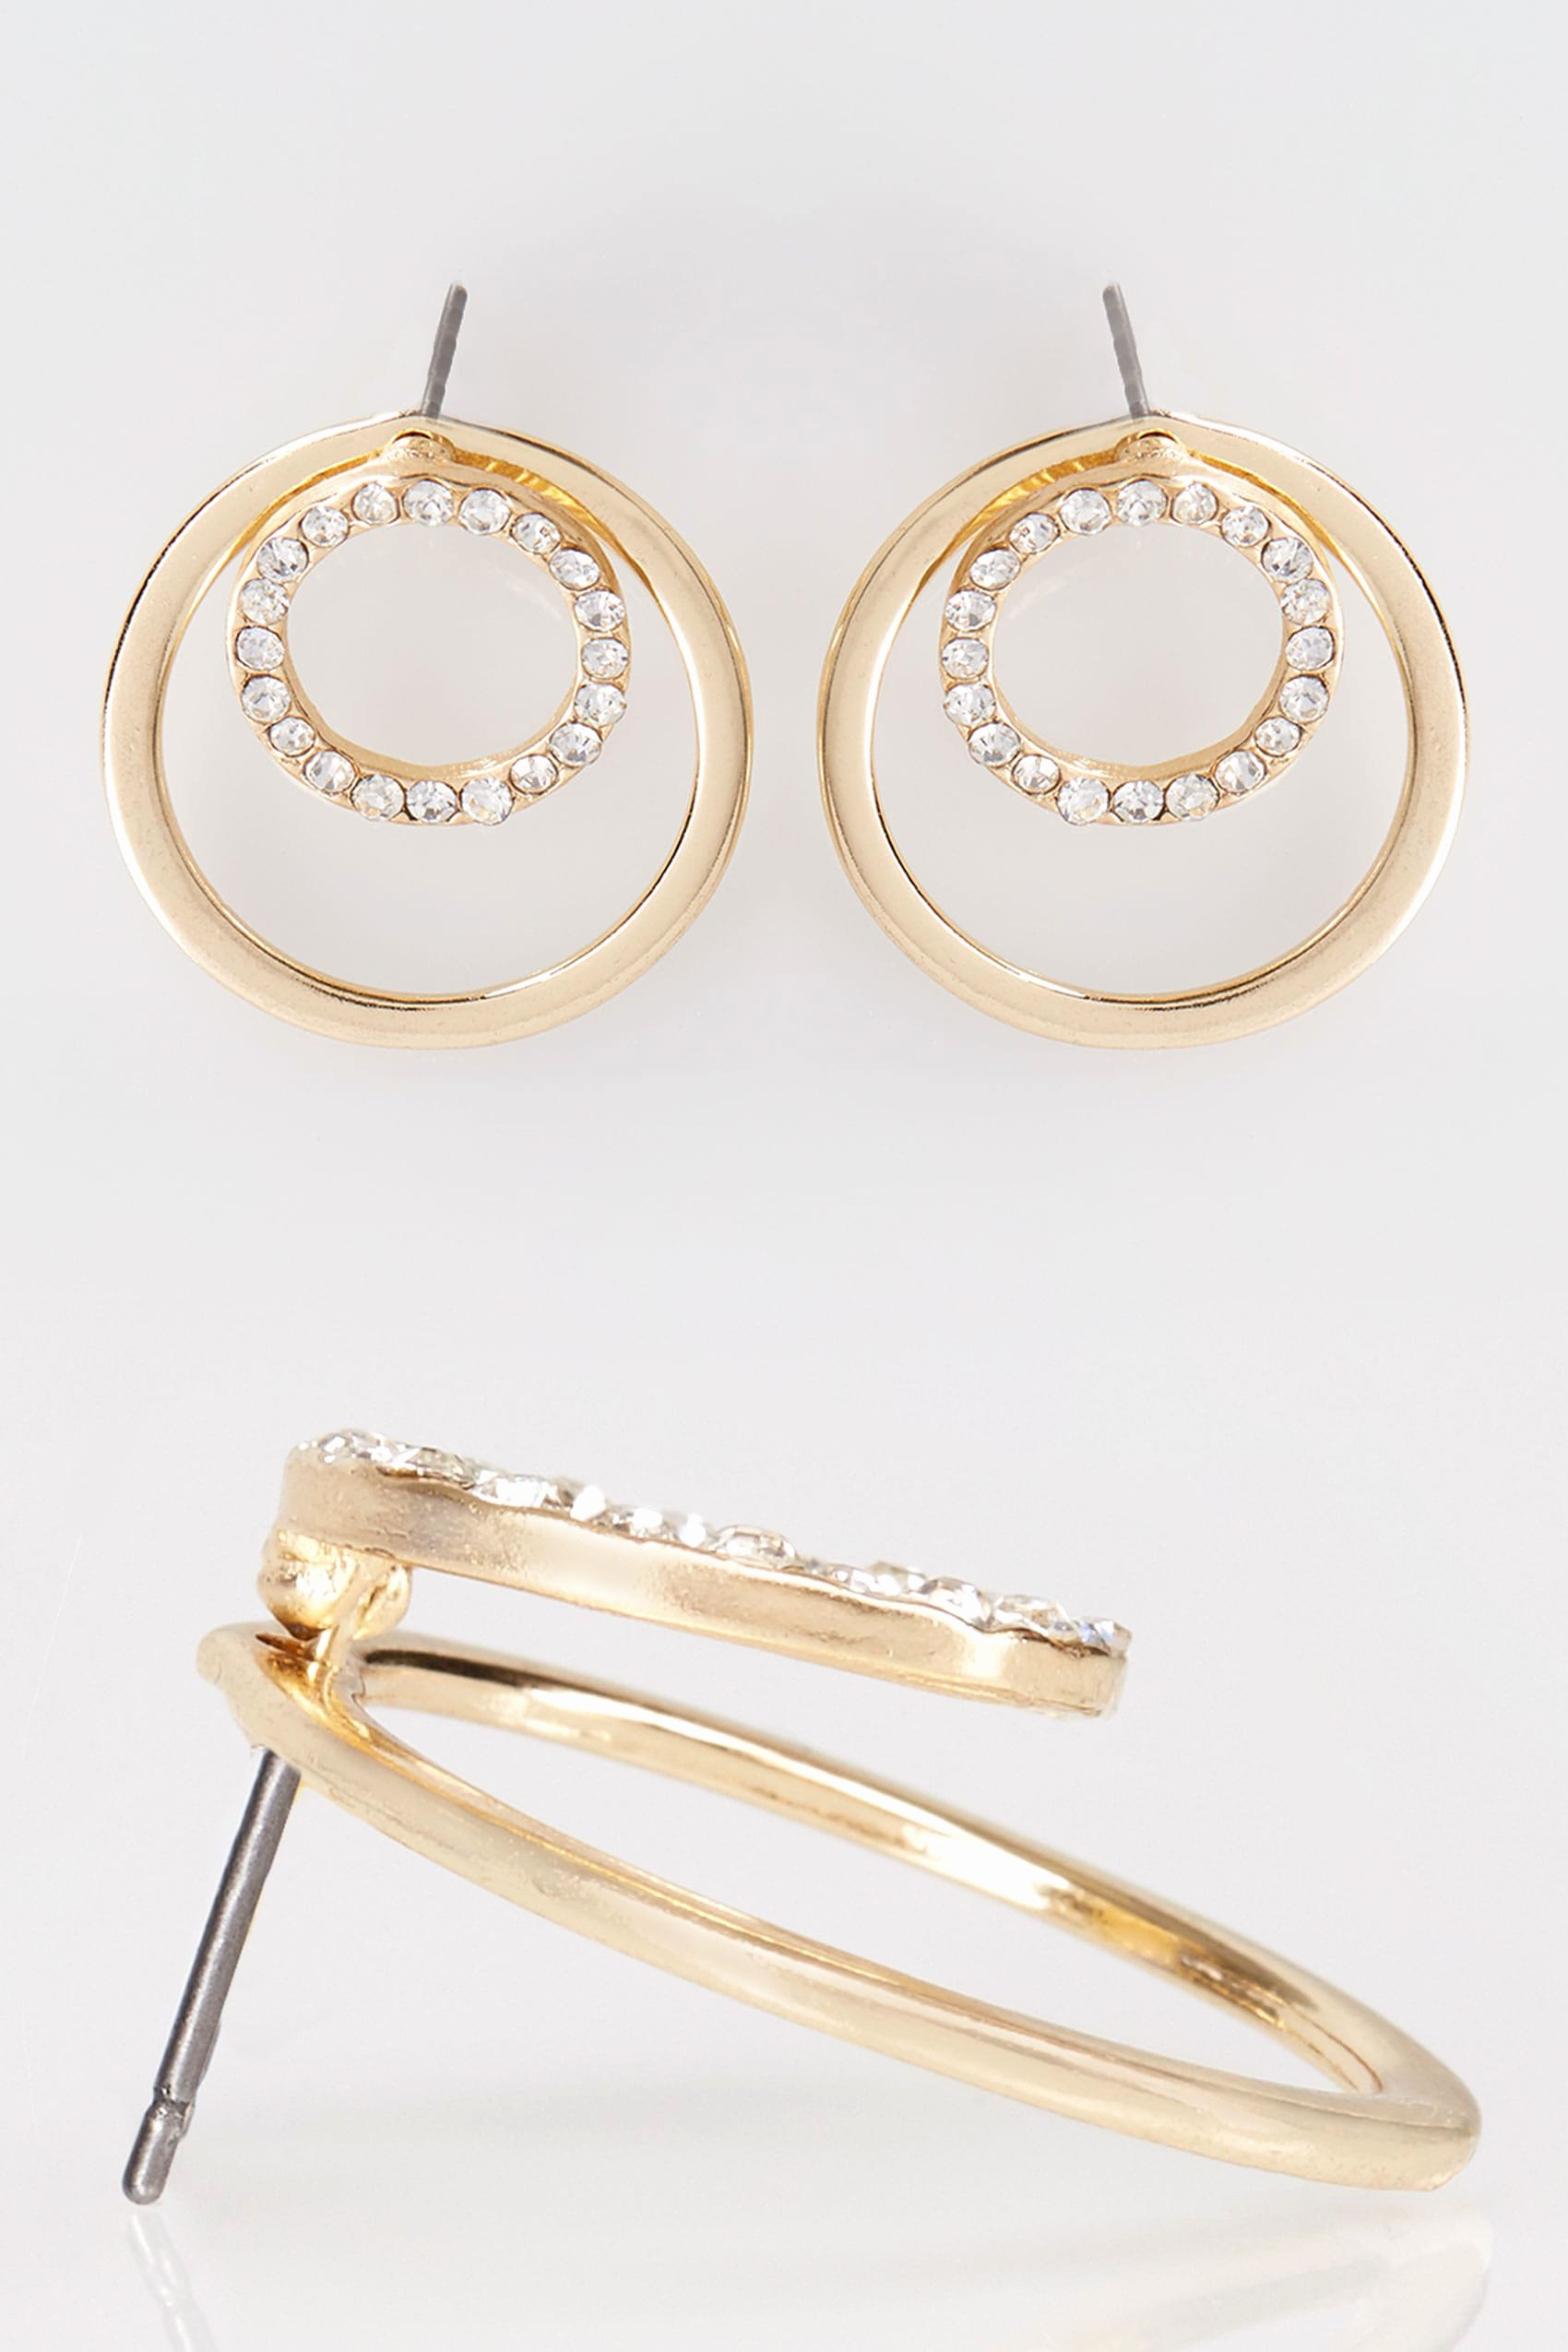 Social Security Awards Letter 2015 Beautiful Gold Diamante Double Circle Earrings